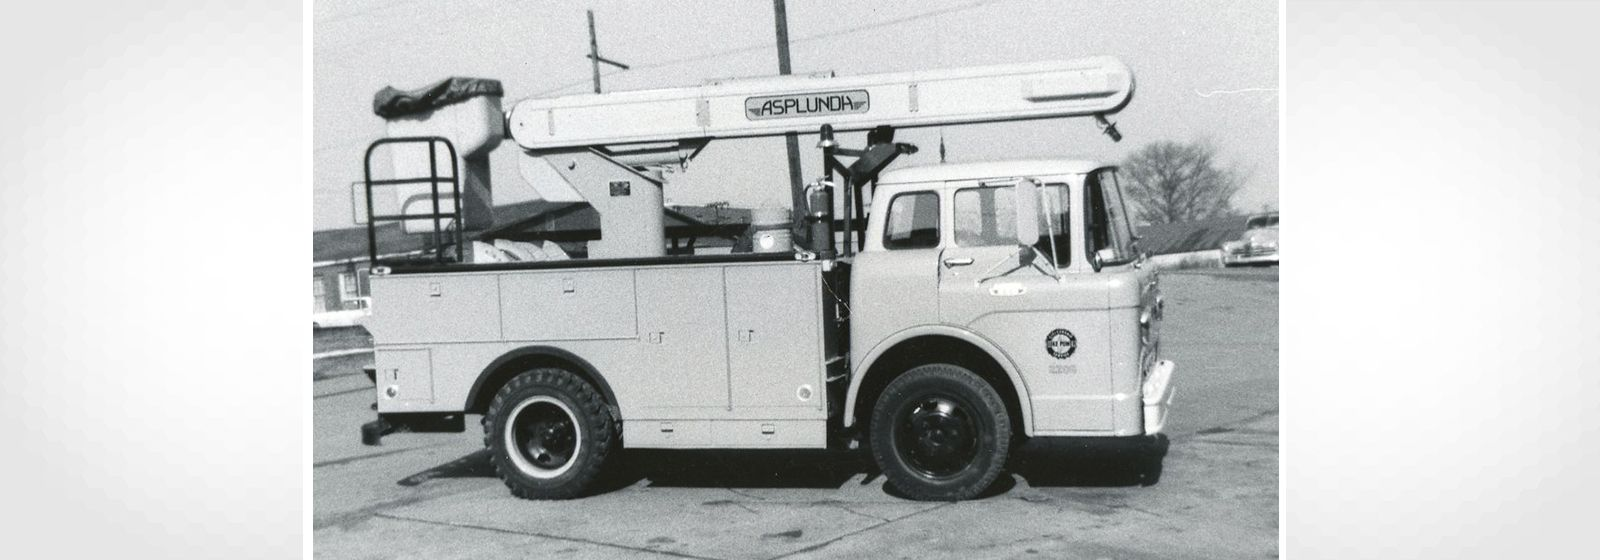 Retro photos: So many bucket trucks